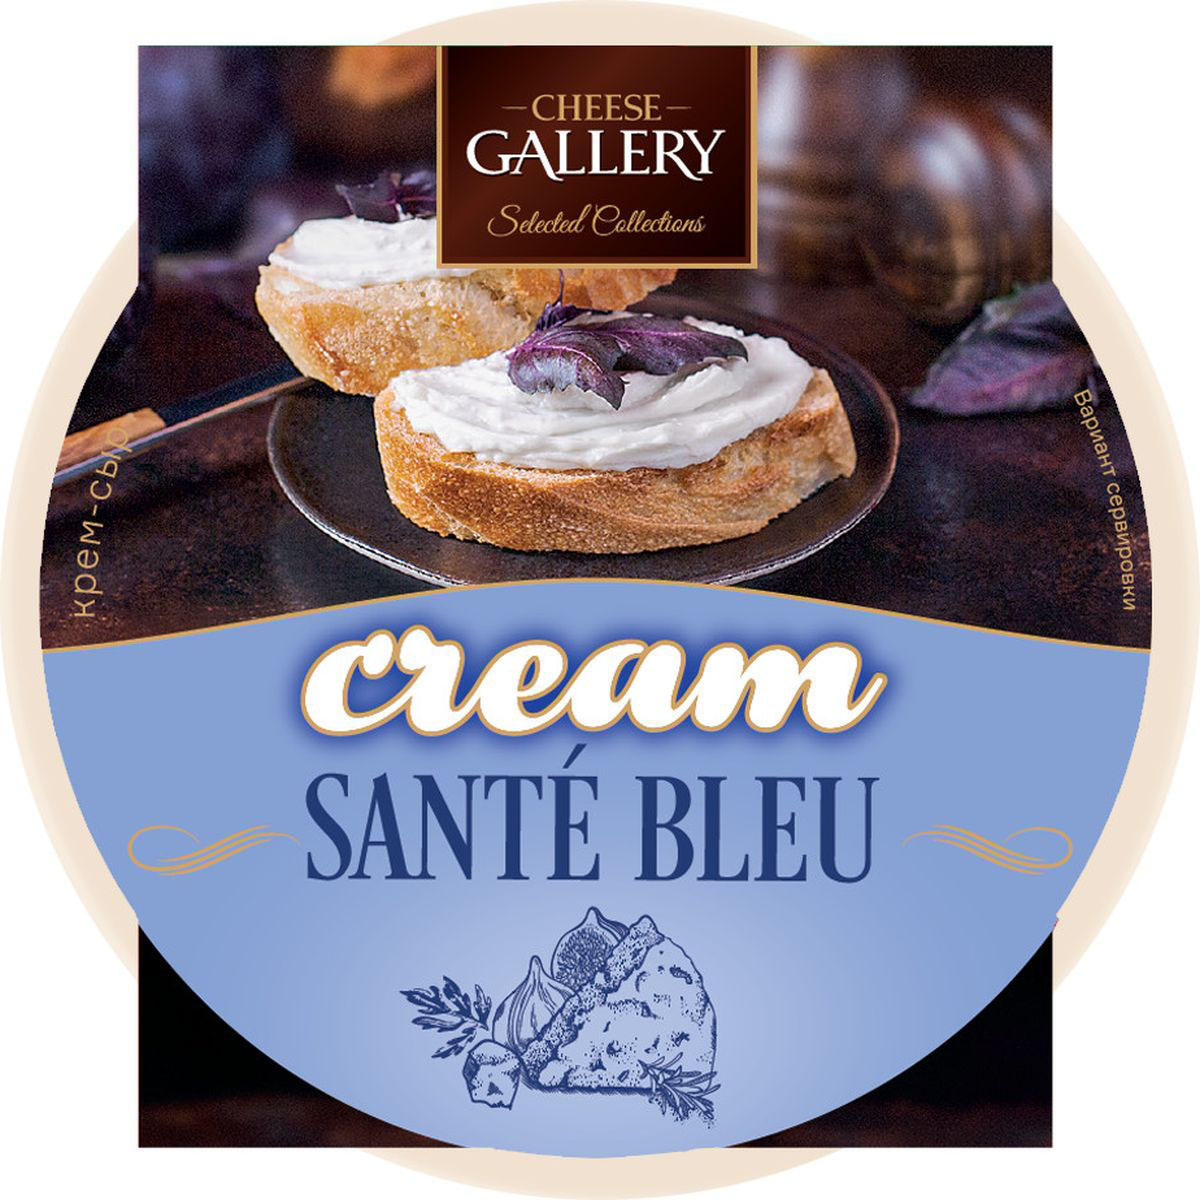 Cheese Gallery Sante Blue Крем-сыр, 150 г cheese gallery сыр песто томато с приправой 45